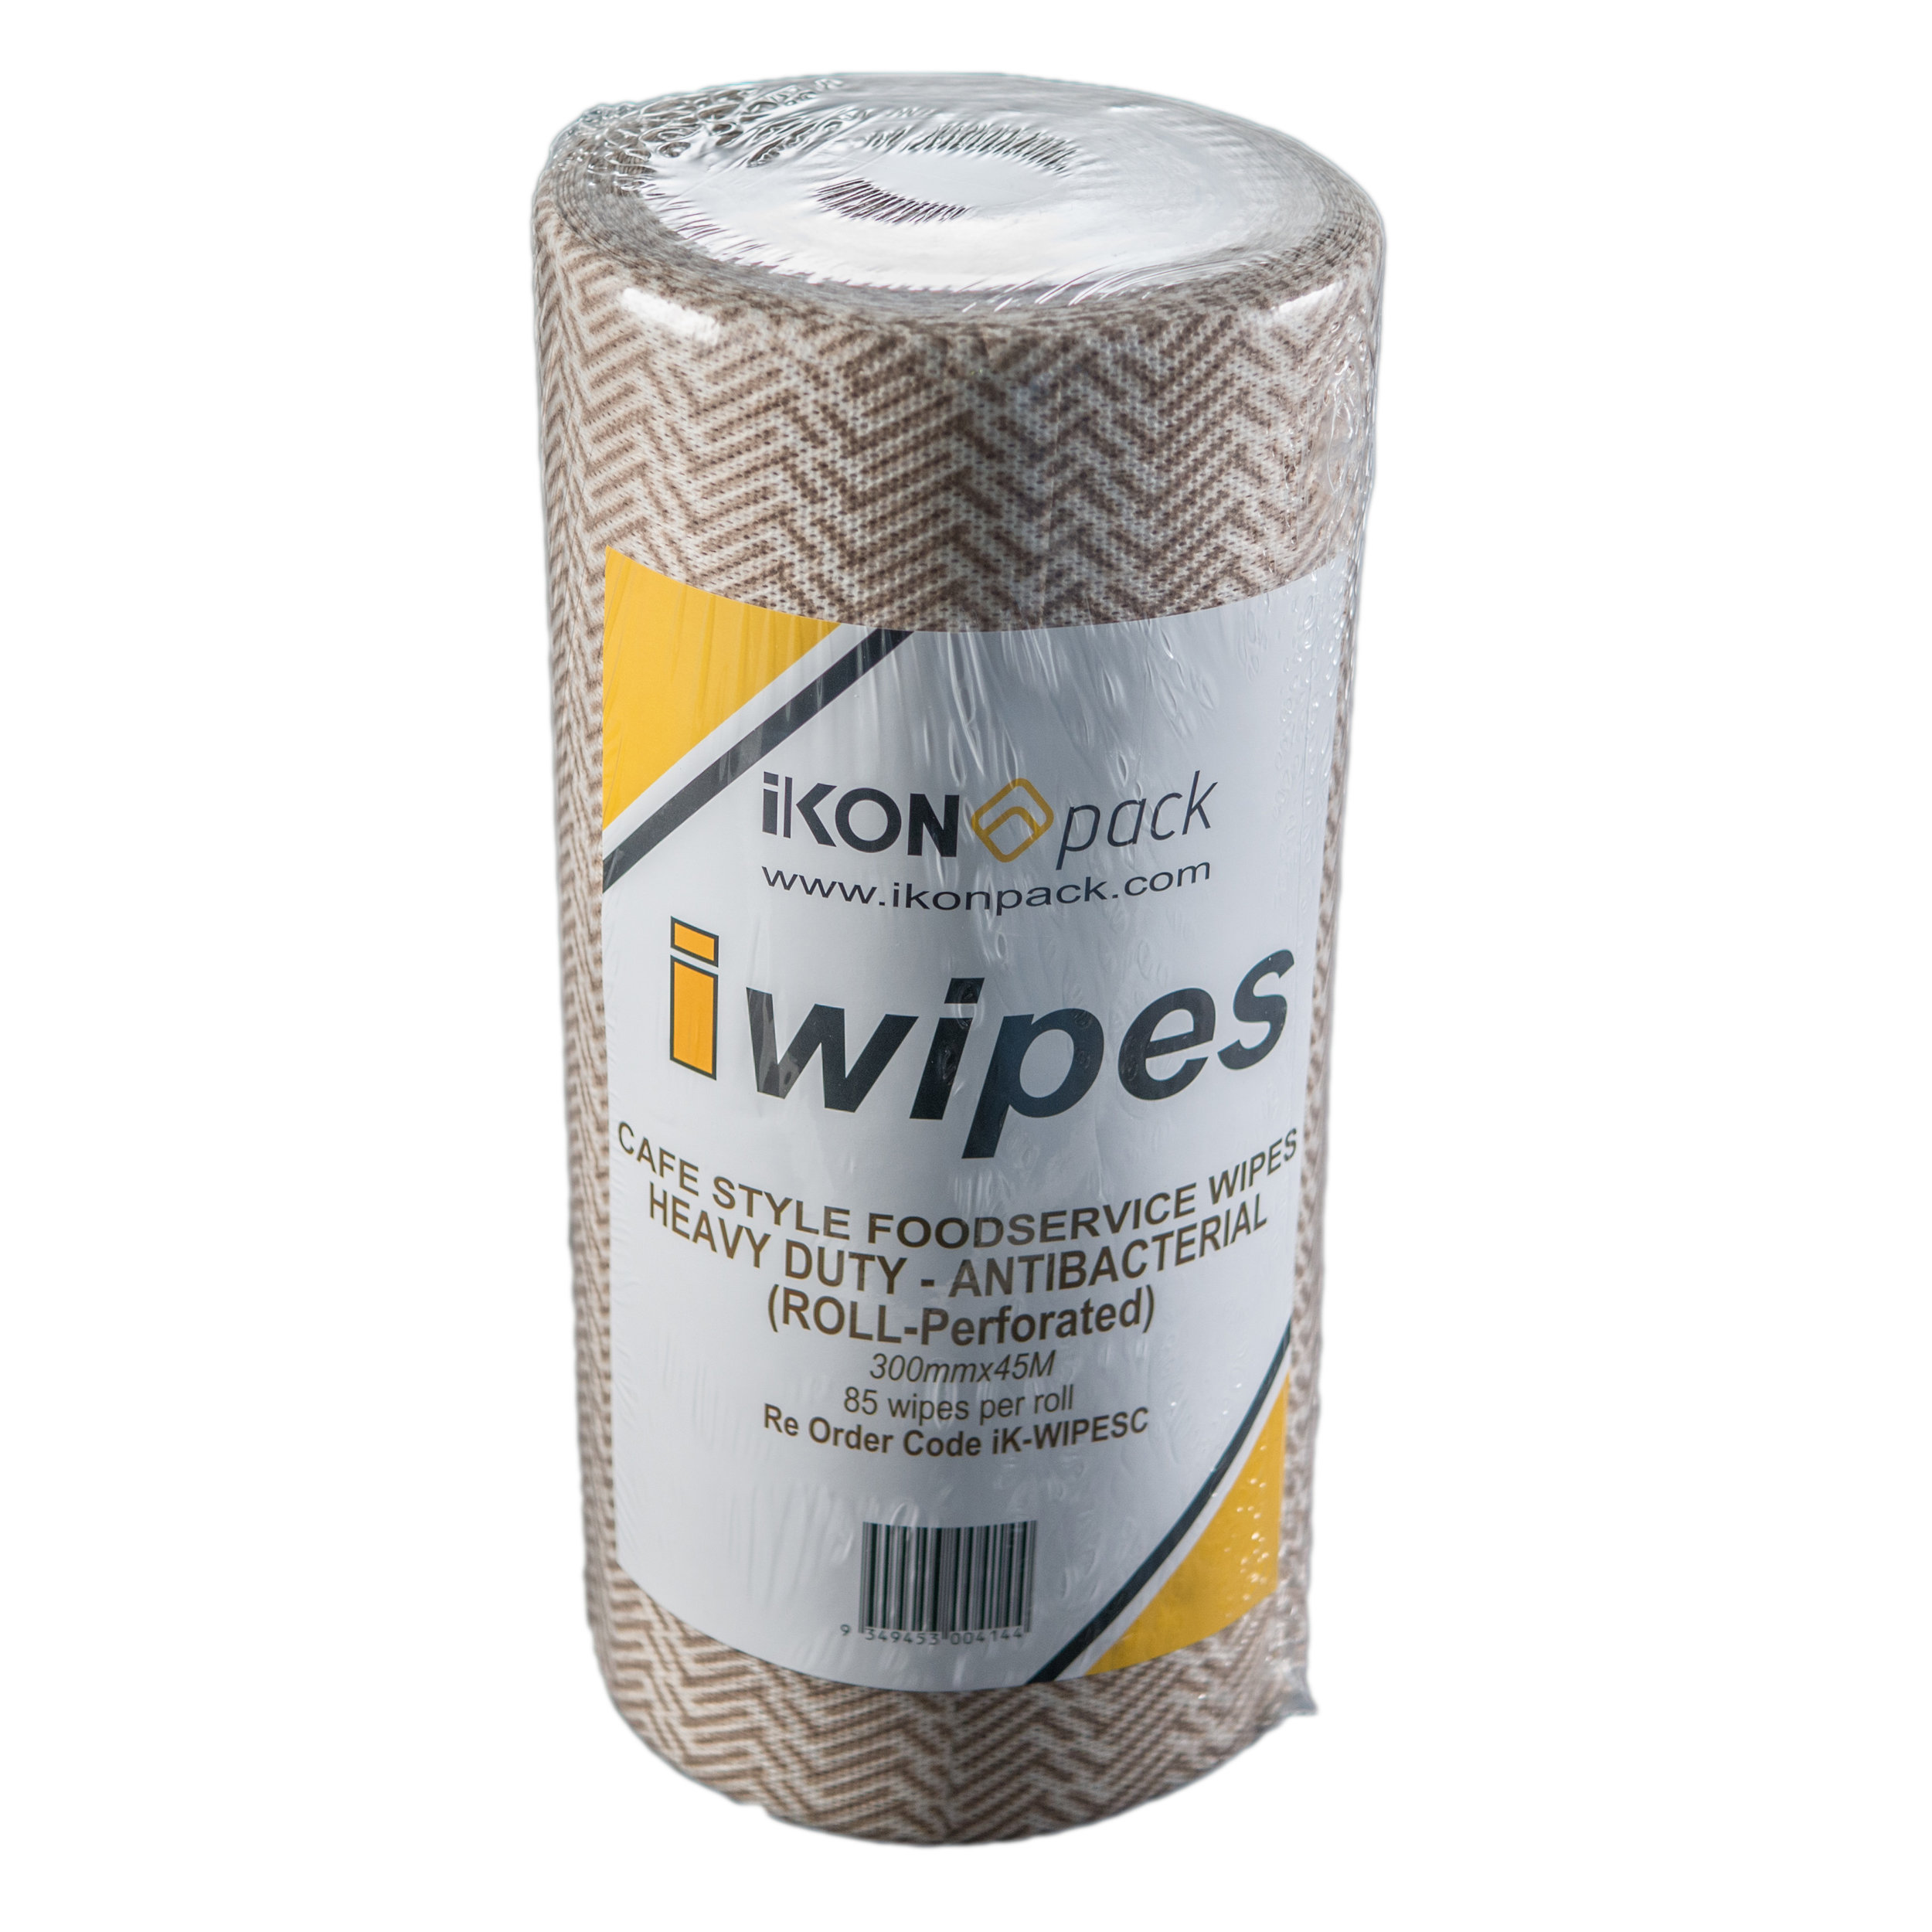 iK-WIPESC CAFÉ-STYLE FOODSERVICE WIPES HEAVY DUTY          (ROLL-Perforated)   300mmx45m ON A ROLL (85 Wipes / roll) PERF.4 rolls per box